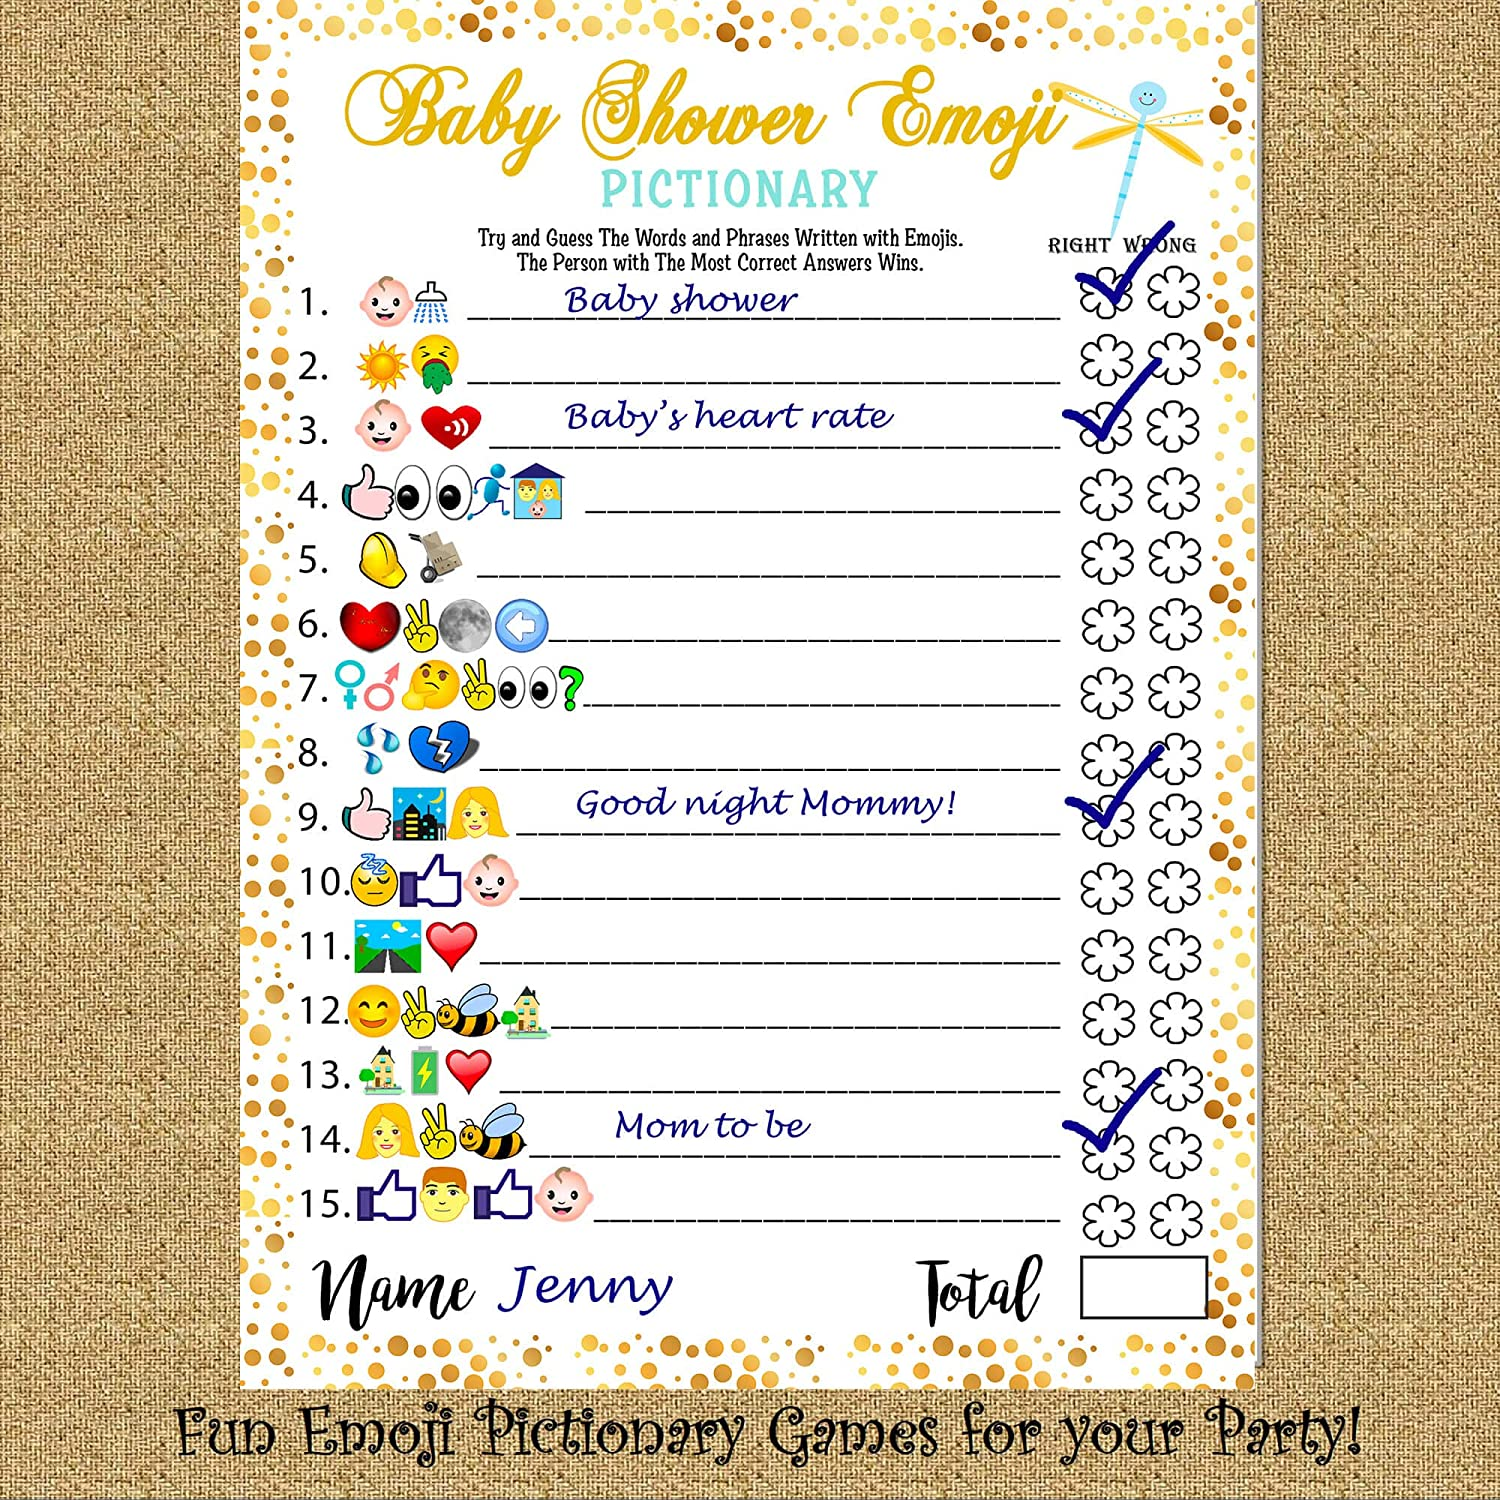 Baby Shower Emoji Pictionary Game Answers - Baby Viewer